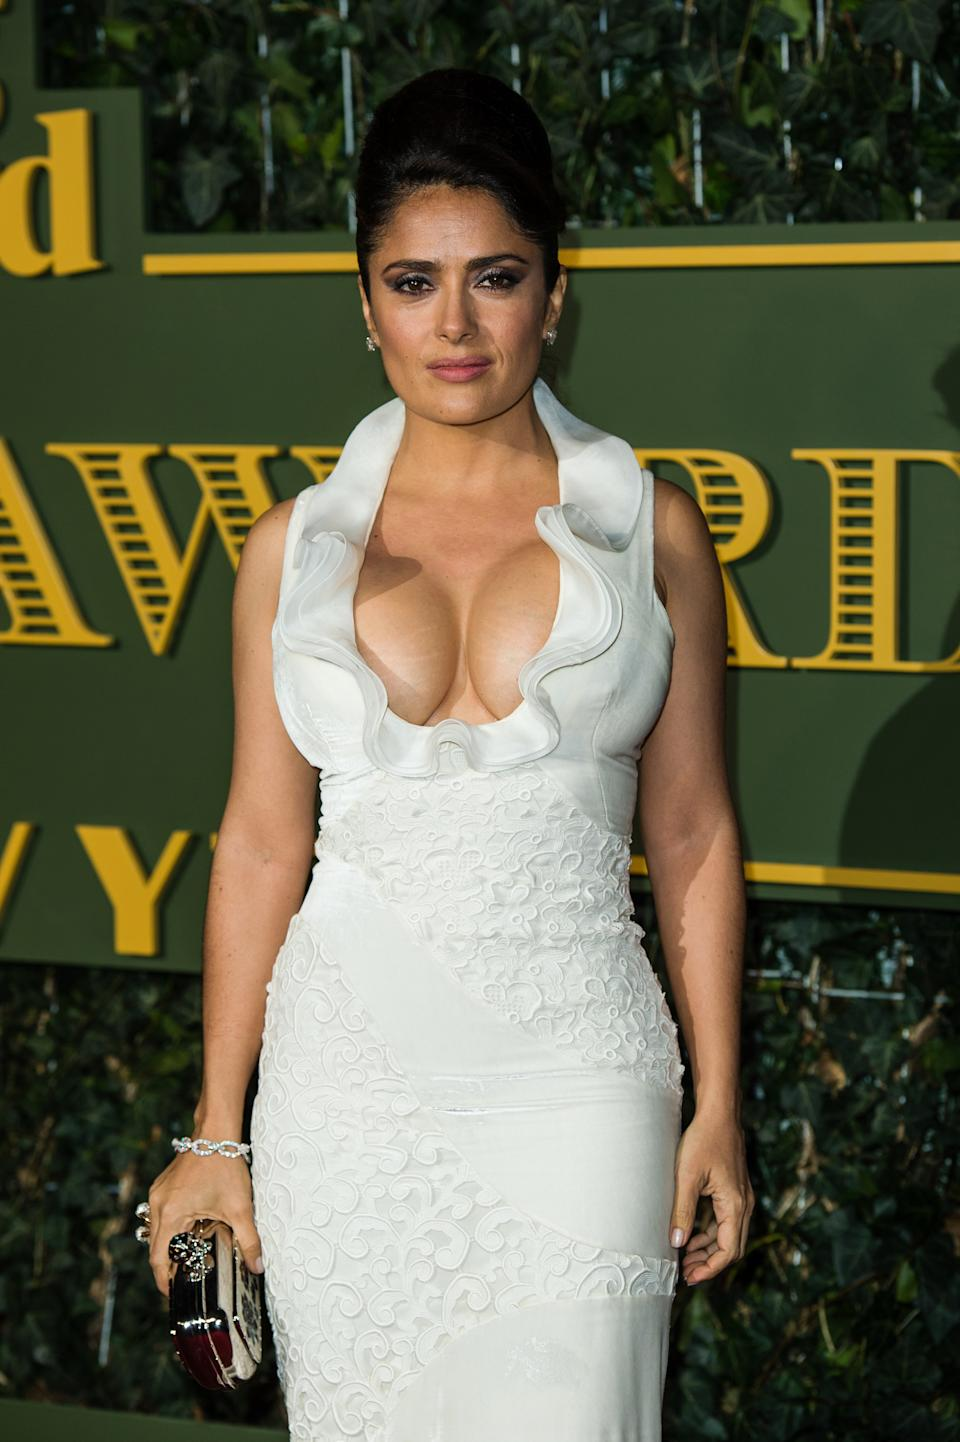 Salma Hayek attends the Evening Standard Theatre Awards at The Old Vic Theatre on November 22, 2015 in London, England.